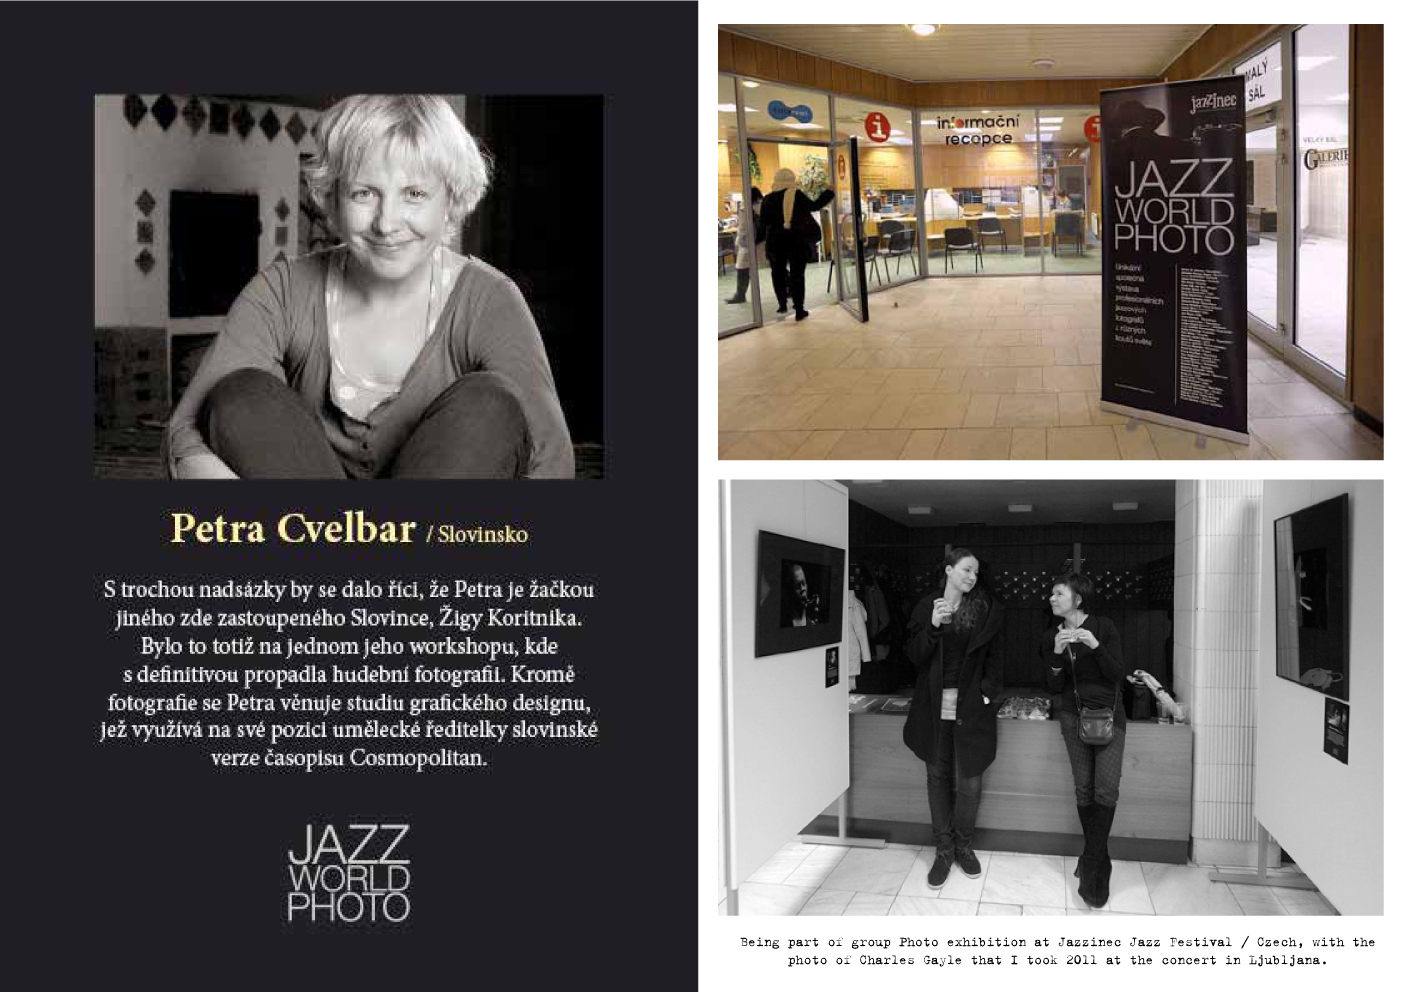 Group Photo Exhibition at Jazzinec Jazz Festival / Czech